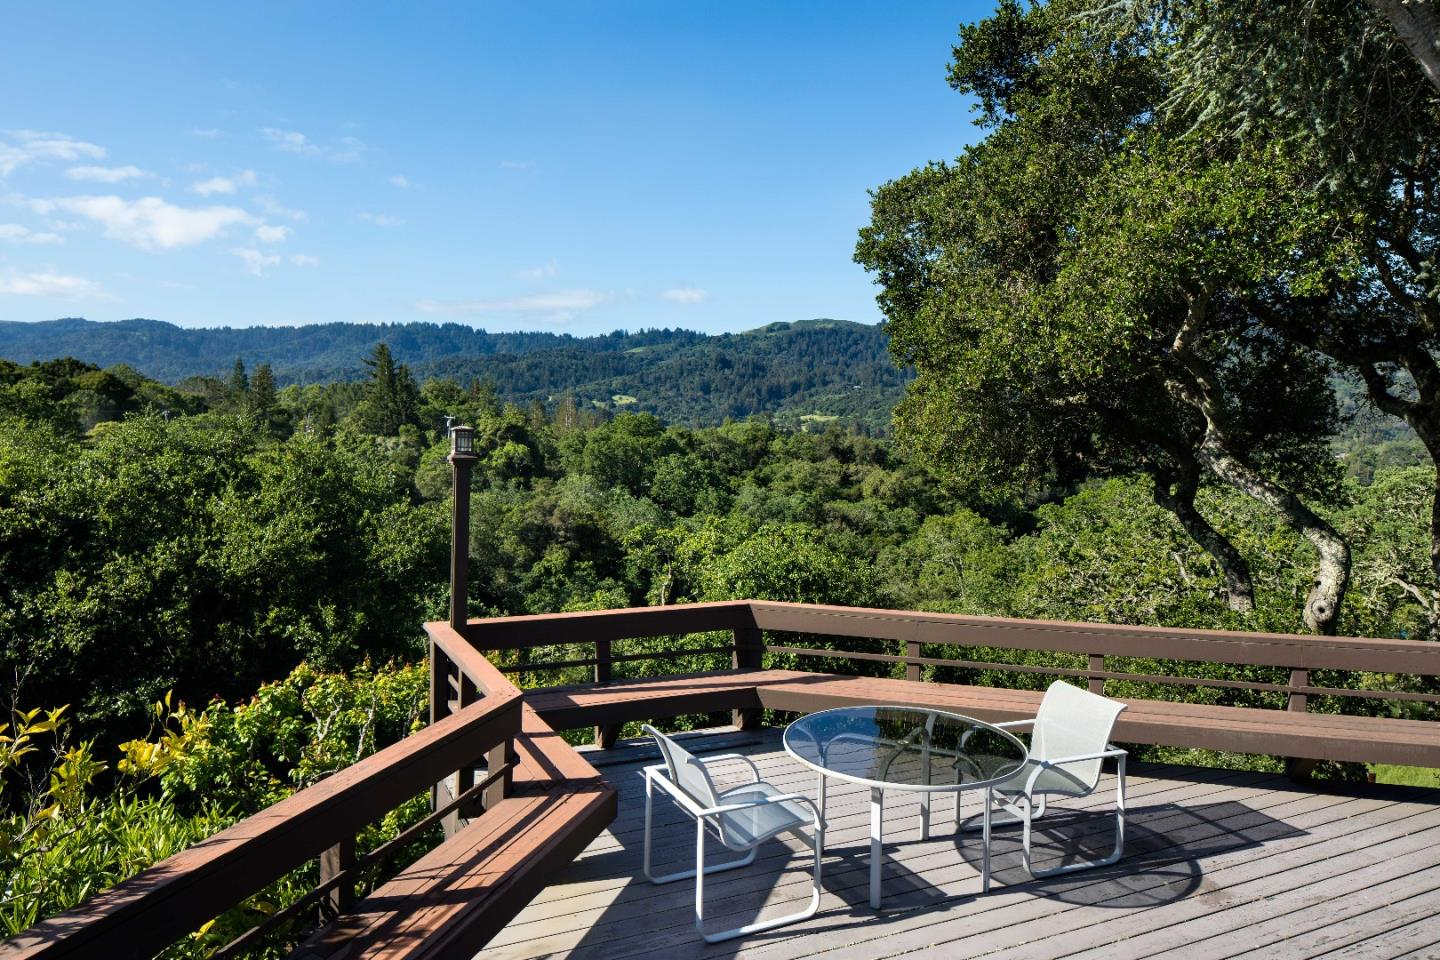 Additional photo for property listing at 157 Ramoso Rd  PORTOLA VALLEY, CALIFORNIA 94028